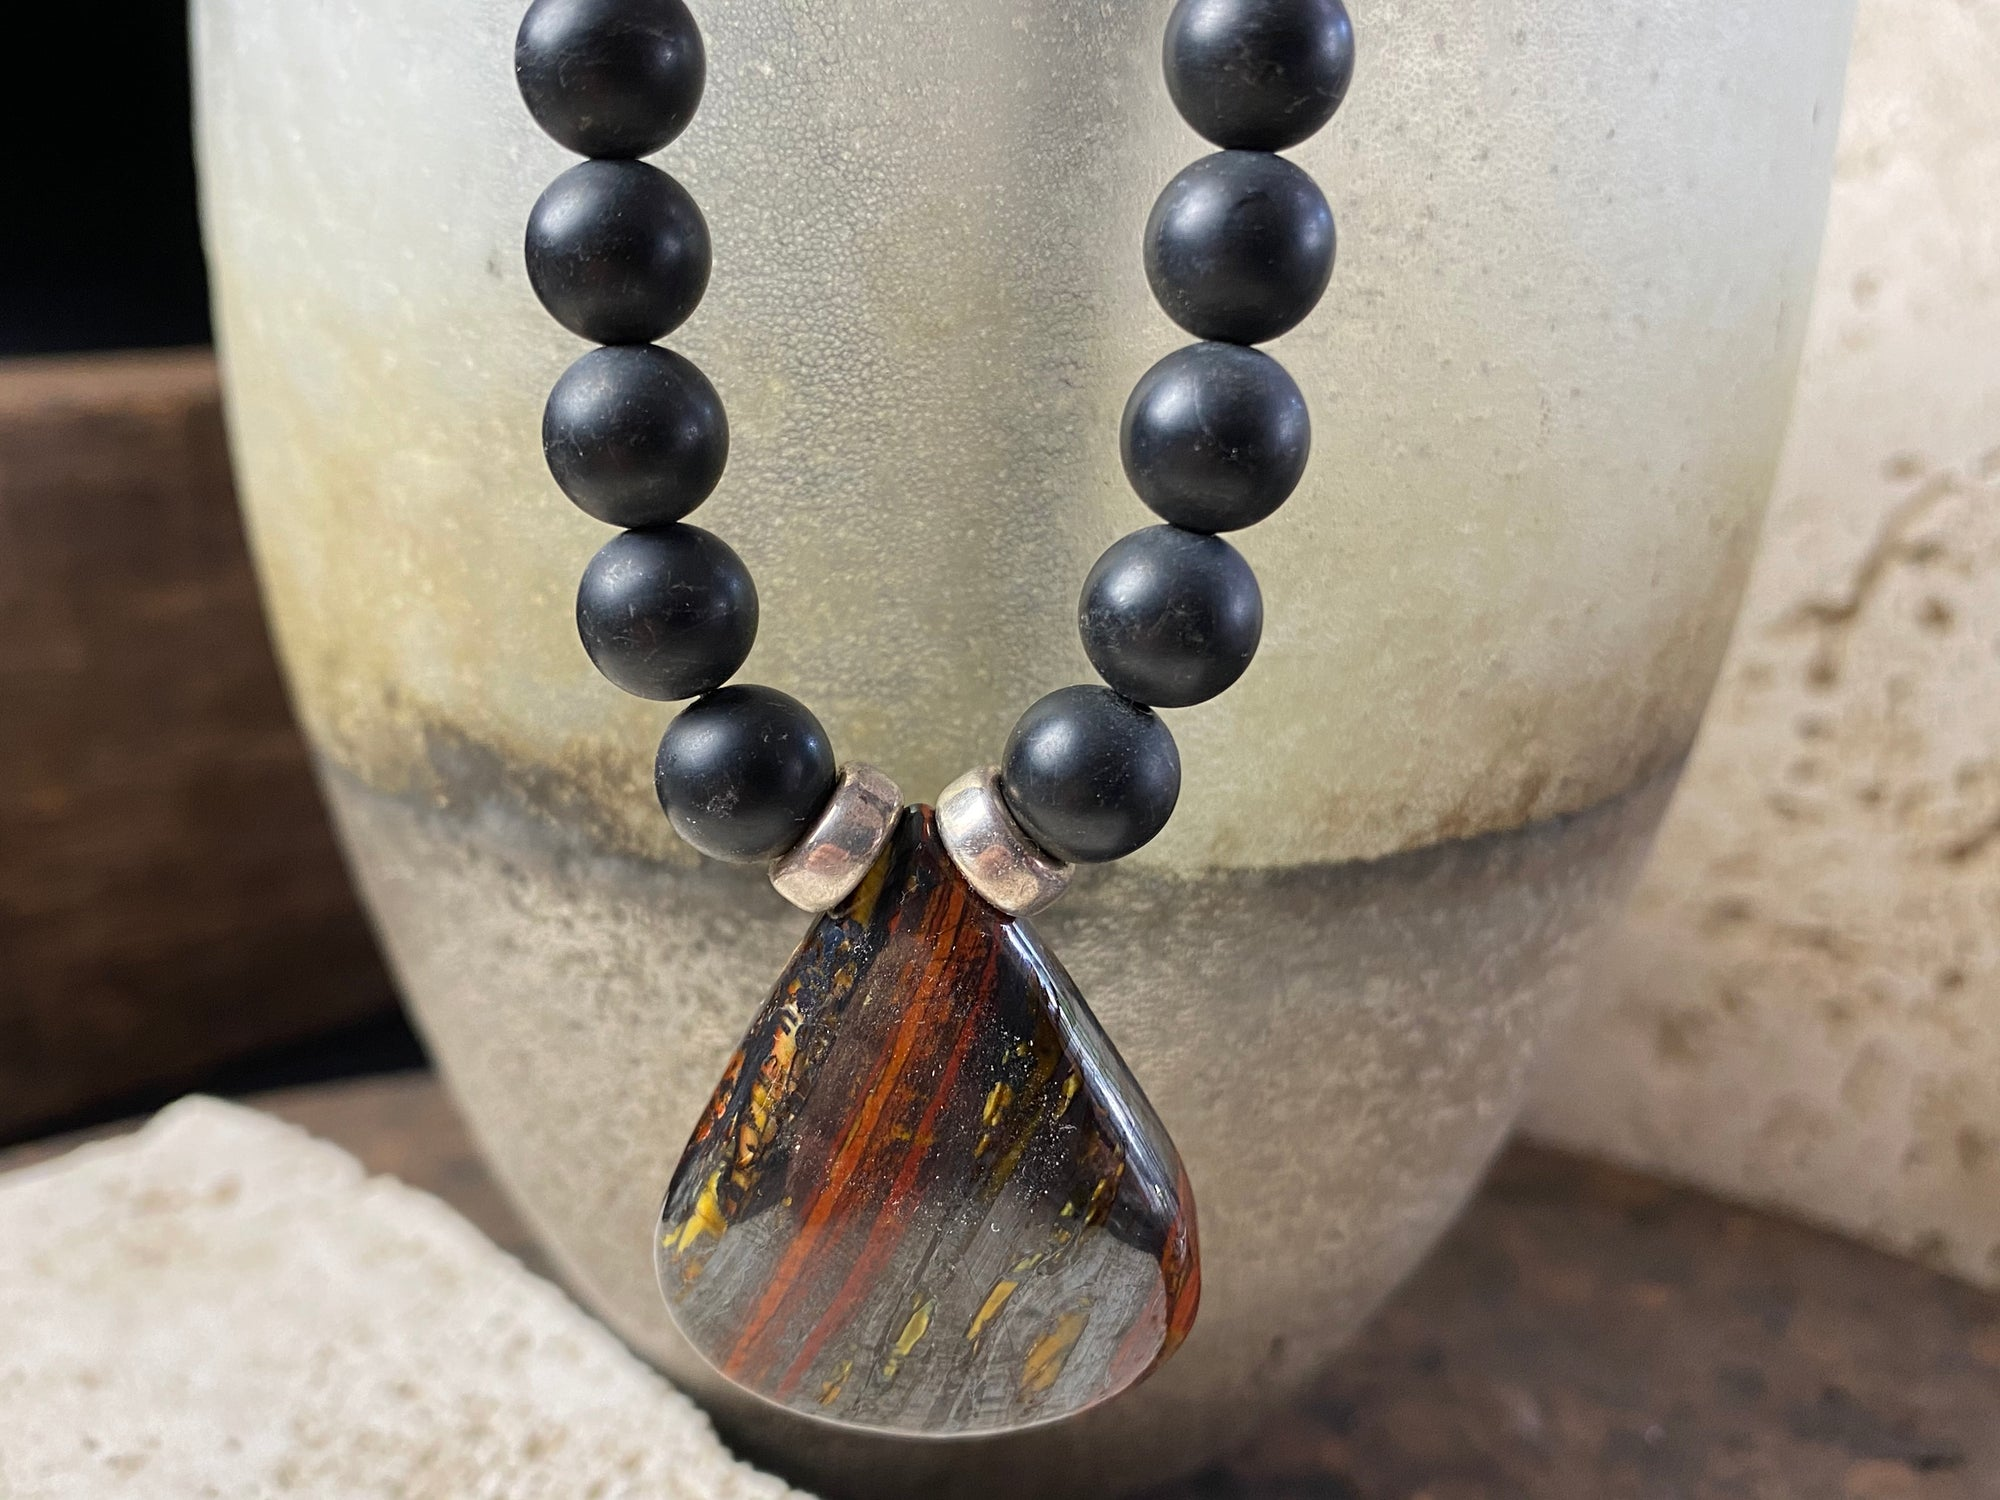 unique necklace of unpolished matte black onyx beads with a teardrop pendant of red tigers eye. Sterling silver clasp and detailing